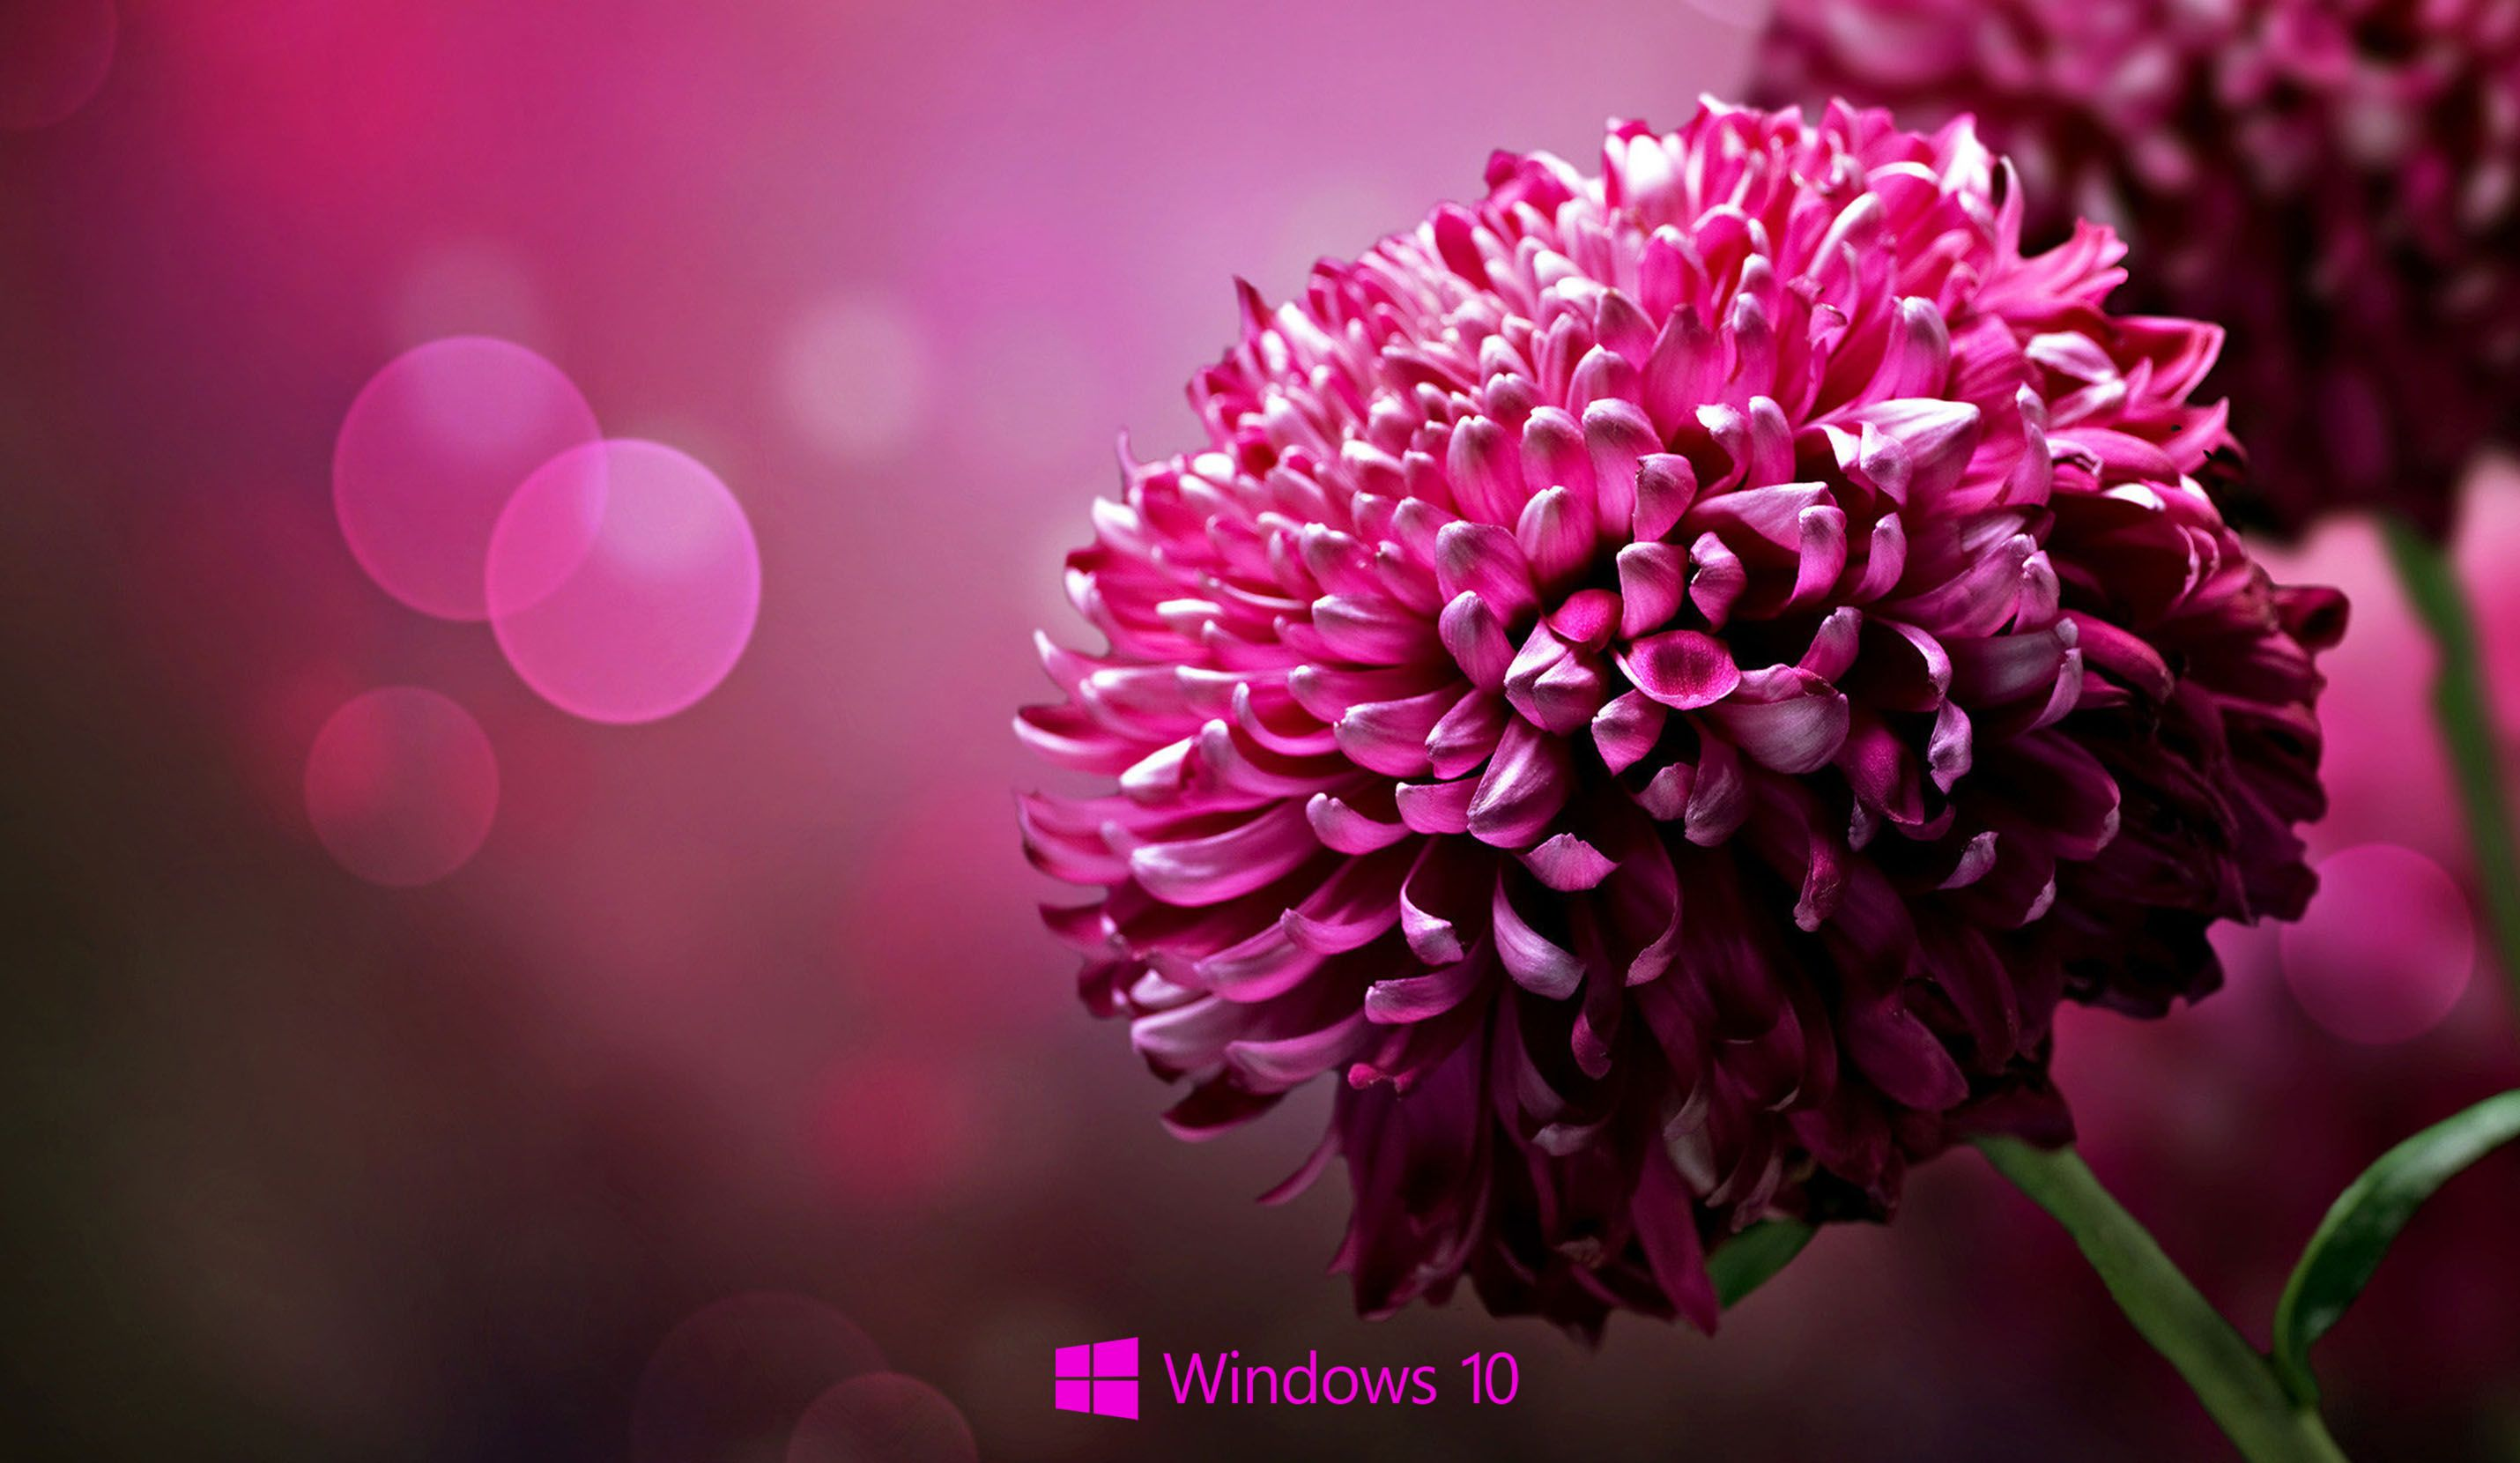 Desktop Backgrounds For Windows 10 Purple Flower Purple Flowers Wallpaper Flower Desktop Wallpaper Beautiful Flowers Images